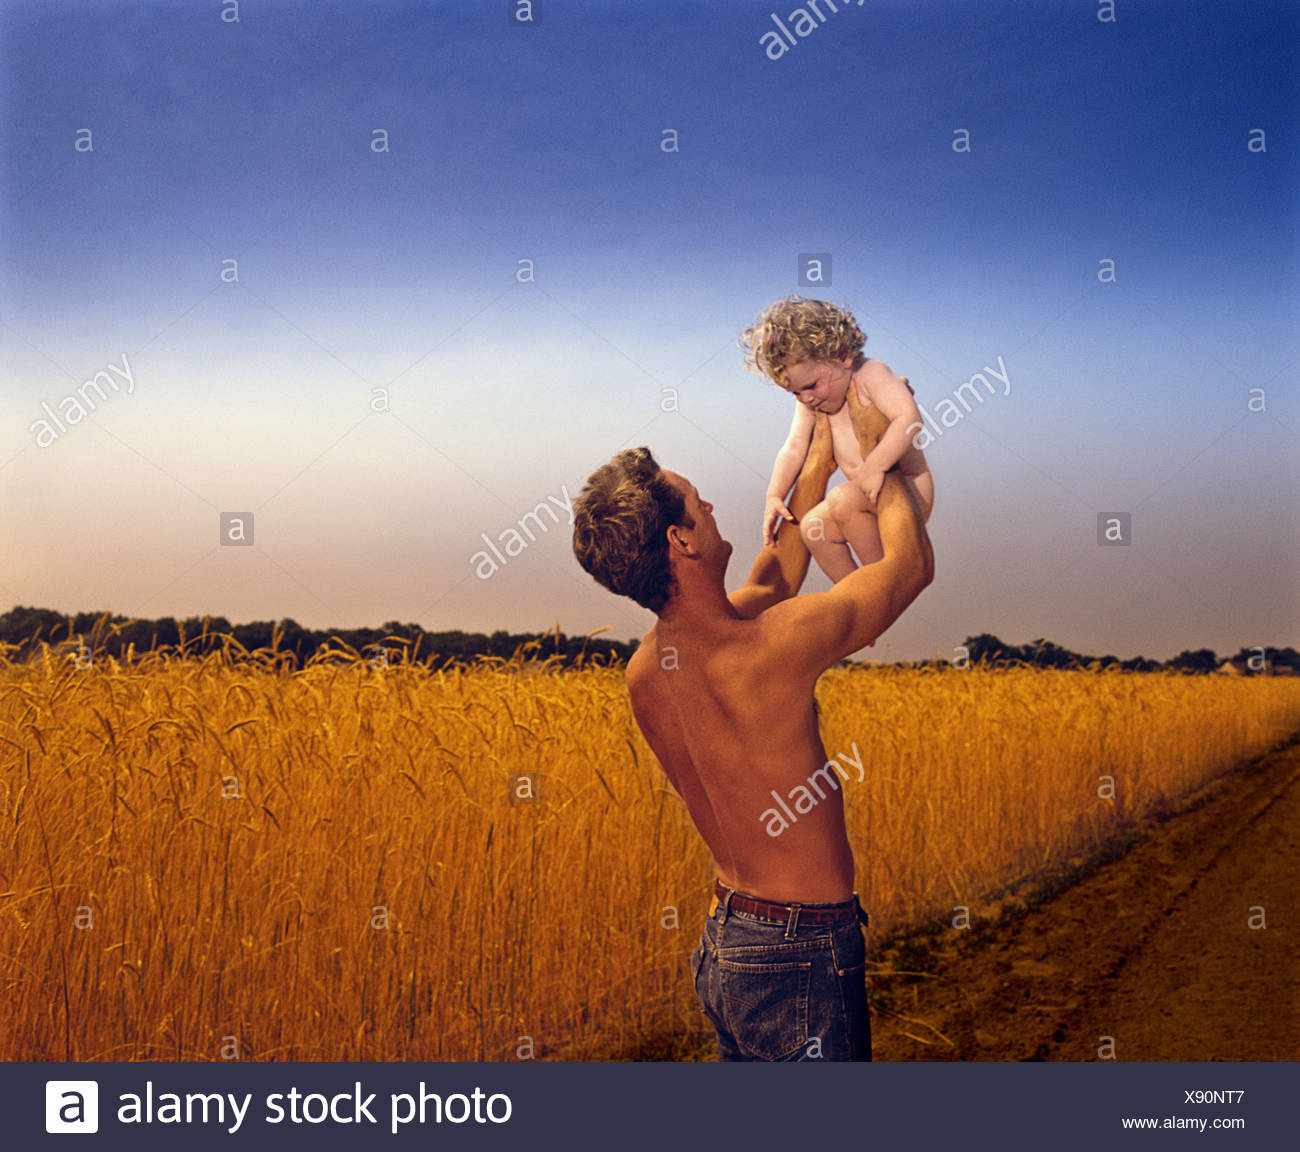 Father with son in rural setting - Stock Image